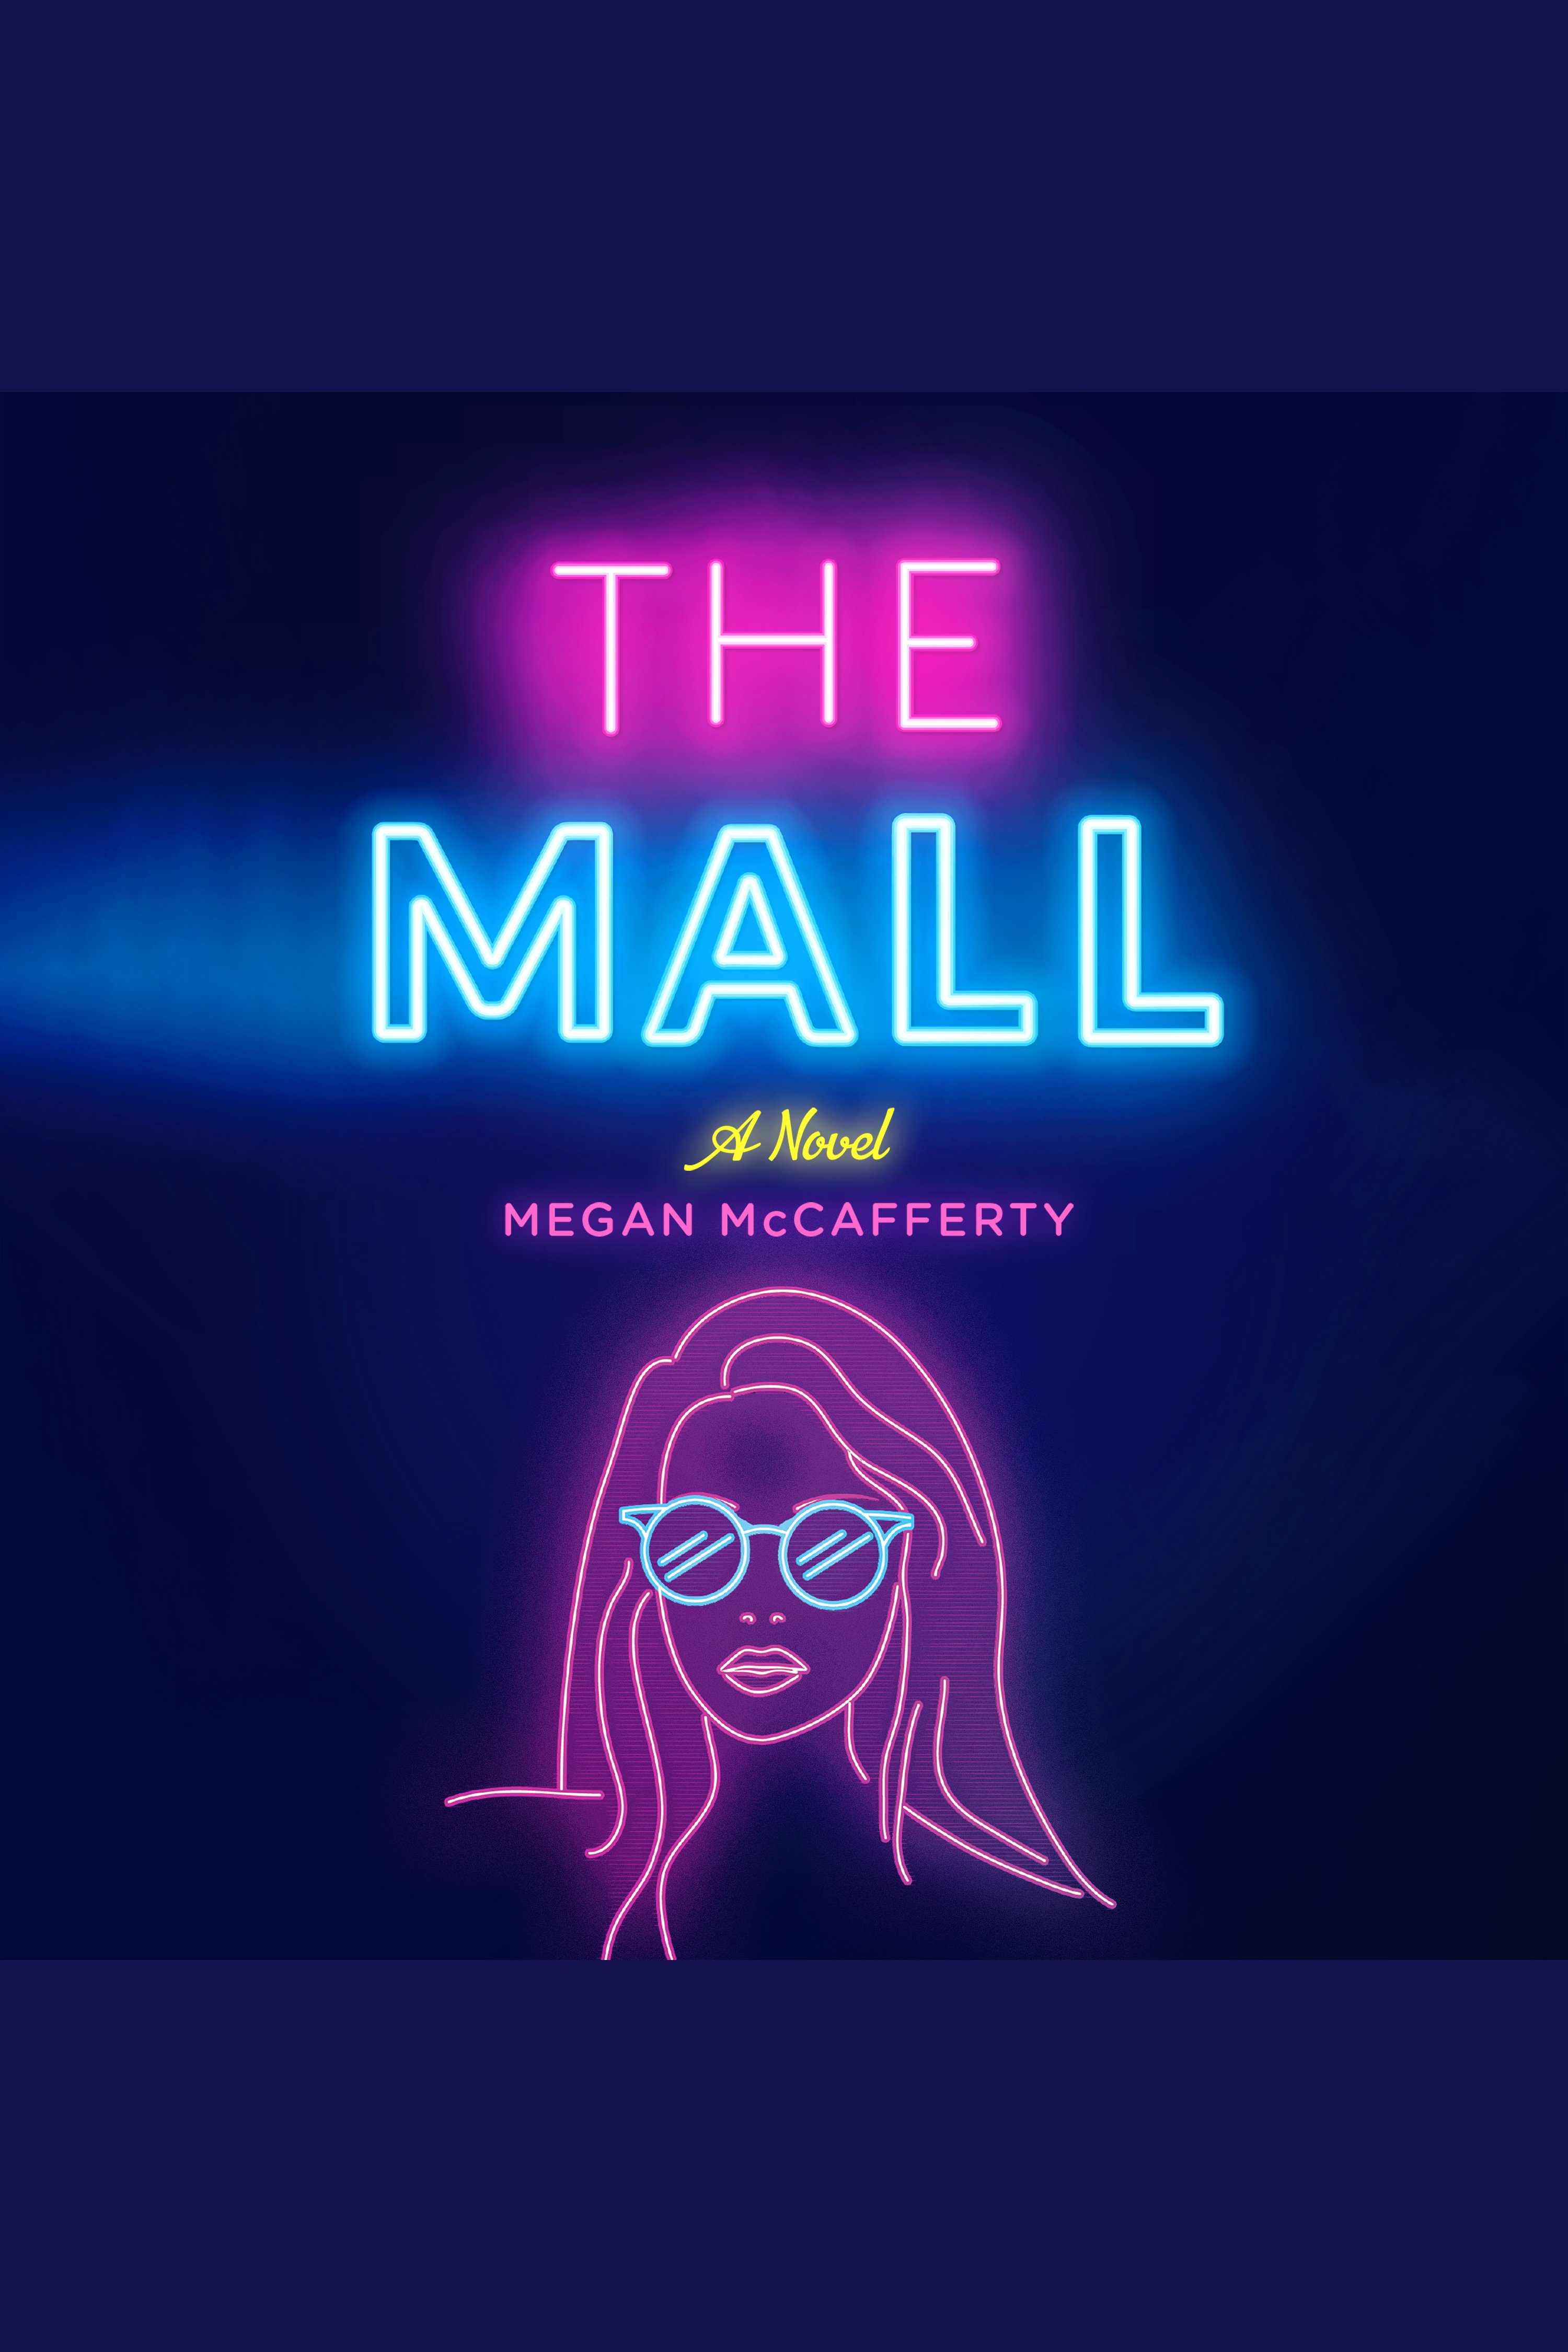 Cover Image of Mall, The